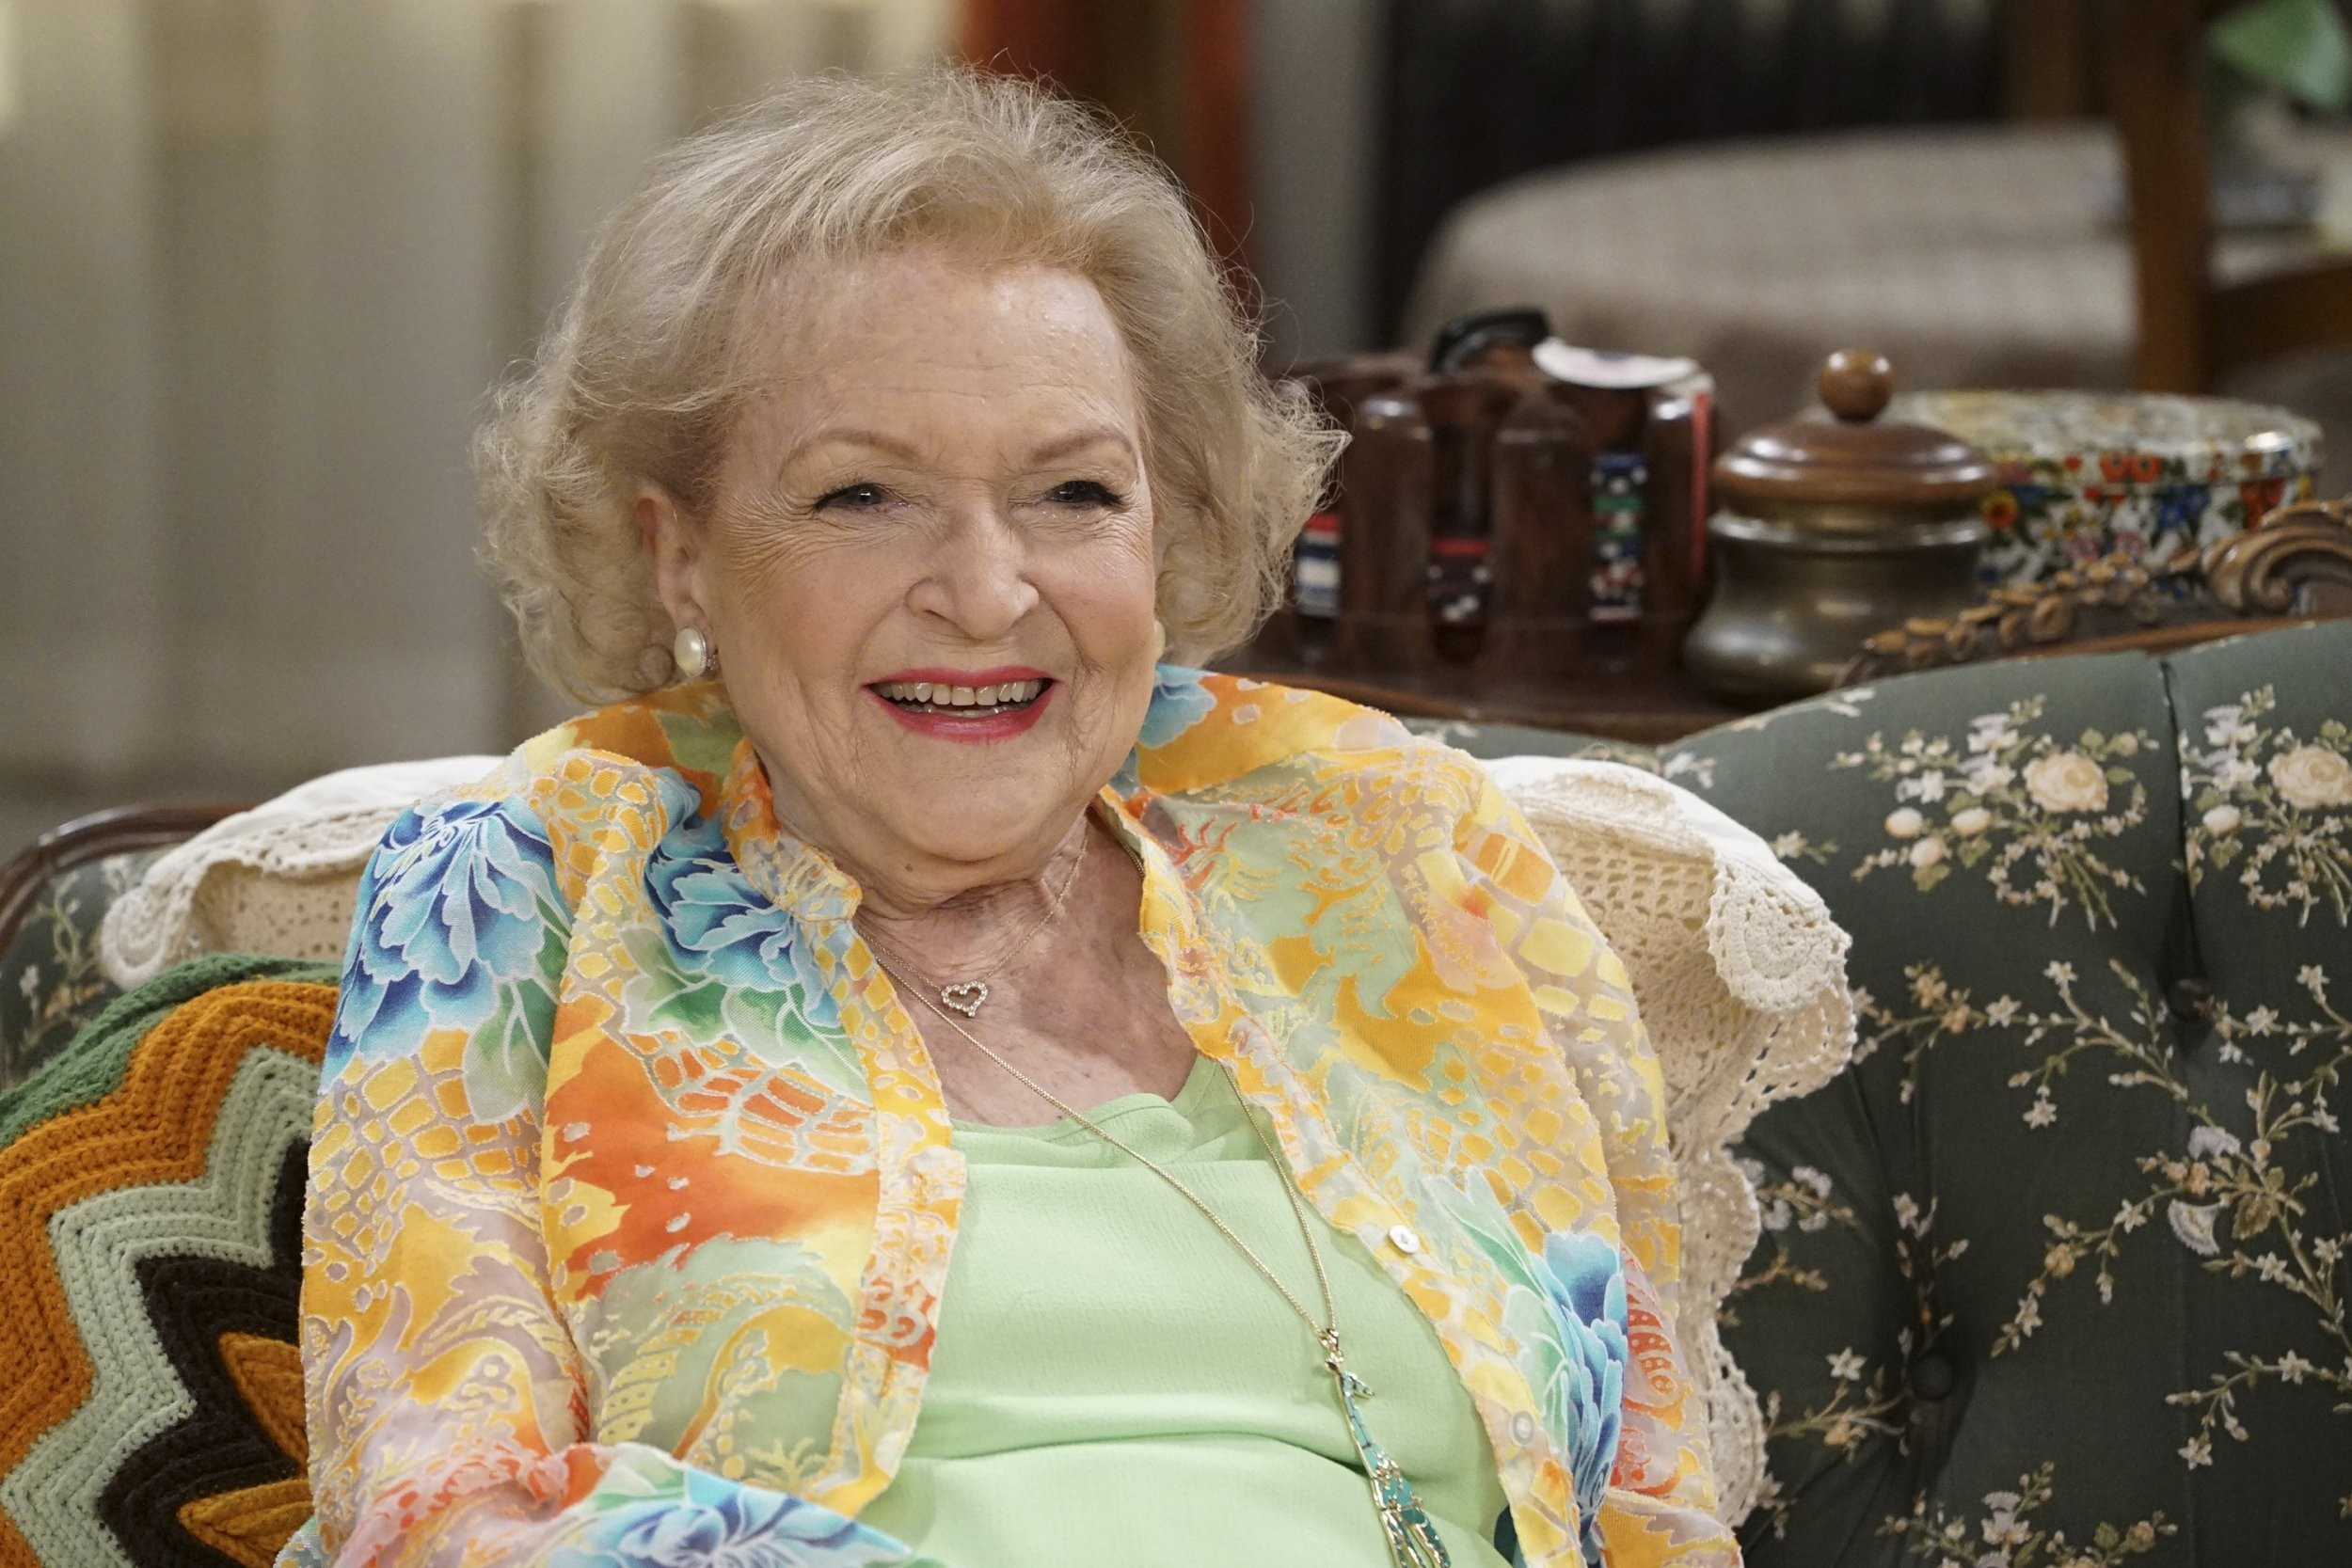 Betty White is safe and sound in self-isolation as fans worry for 98-year-old star in coronavirus pandemic